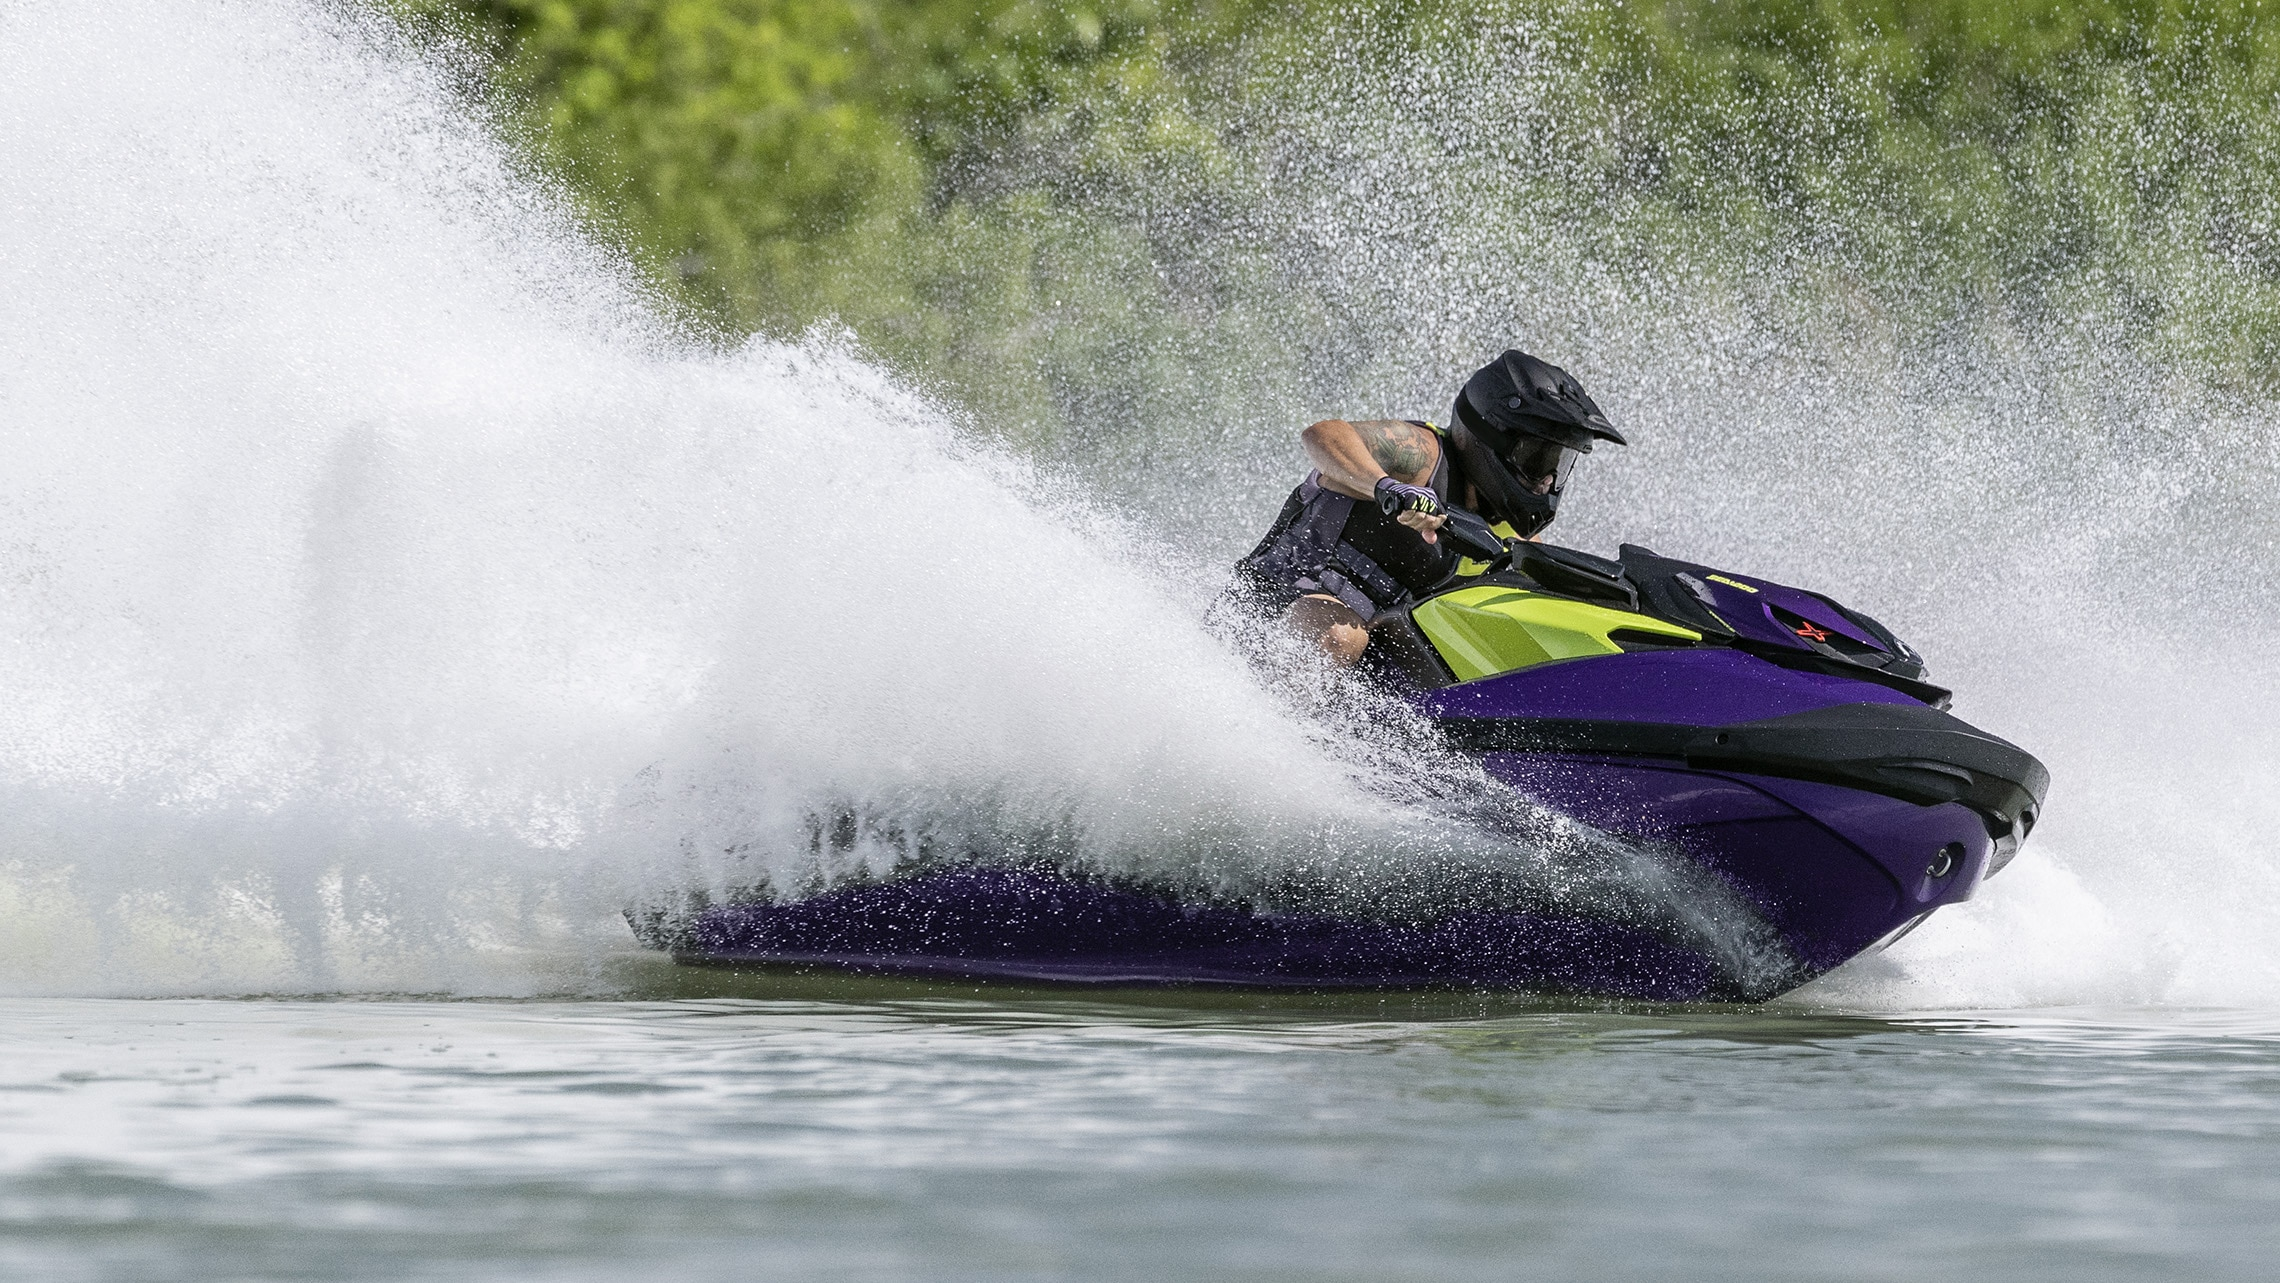 Sea-Doo RXP-X New T3-R hull feature